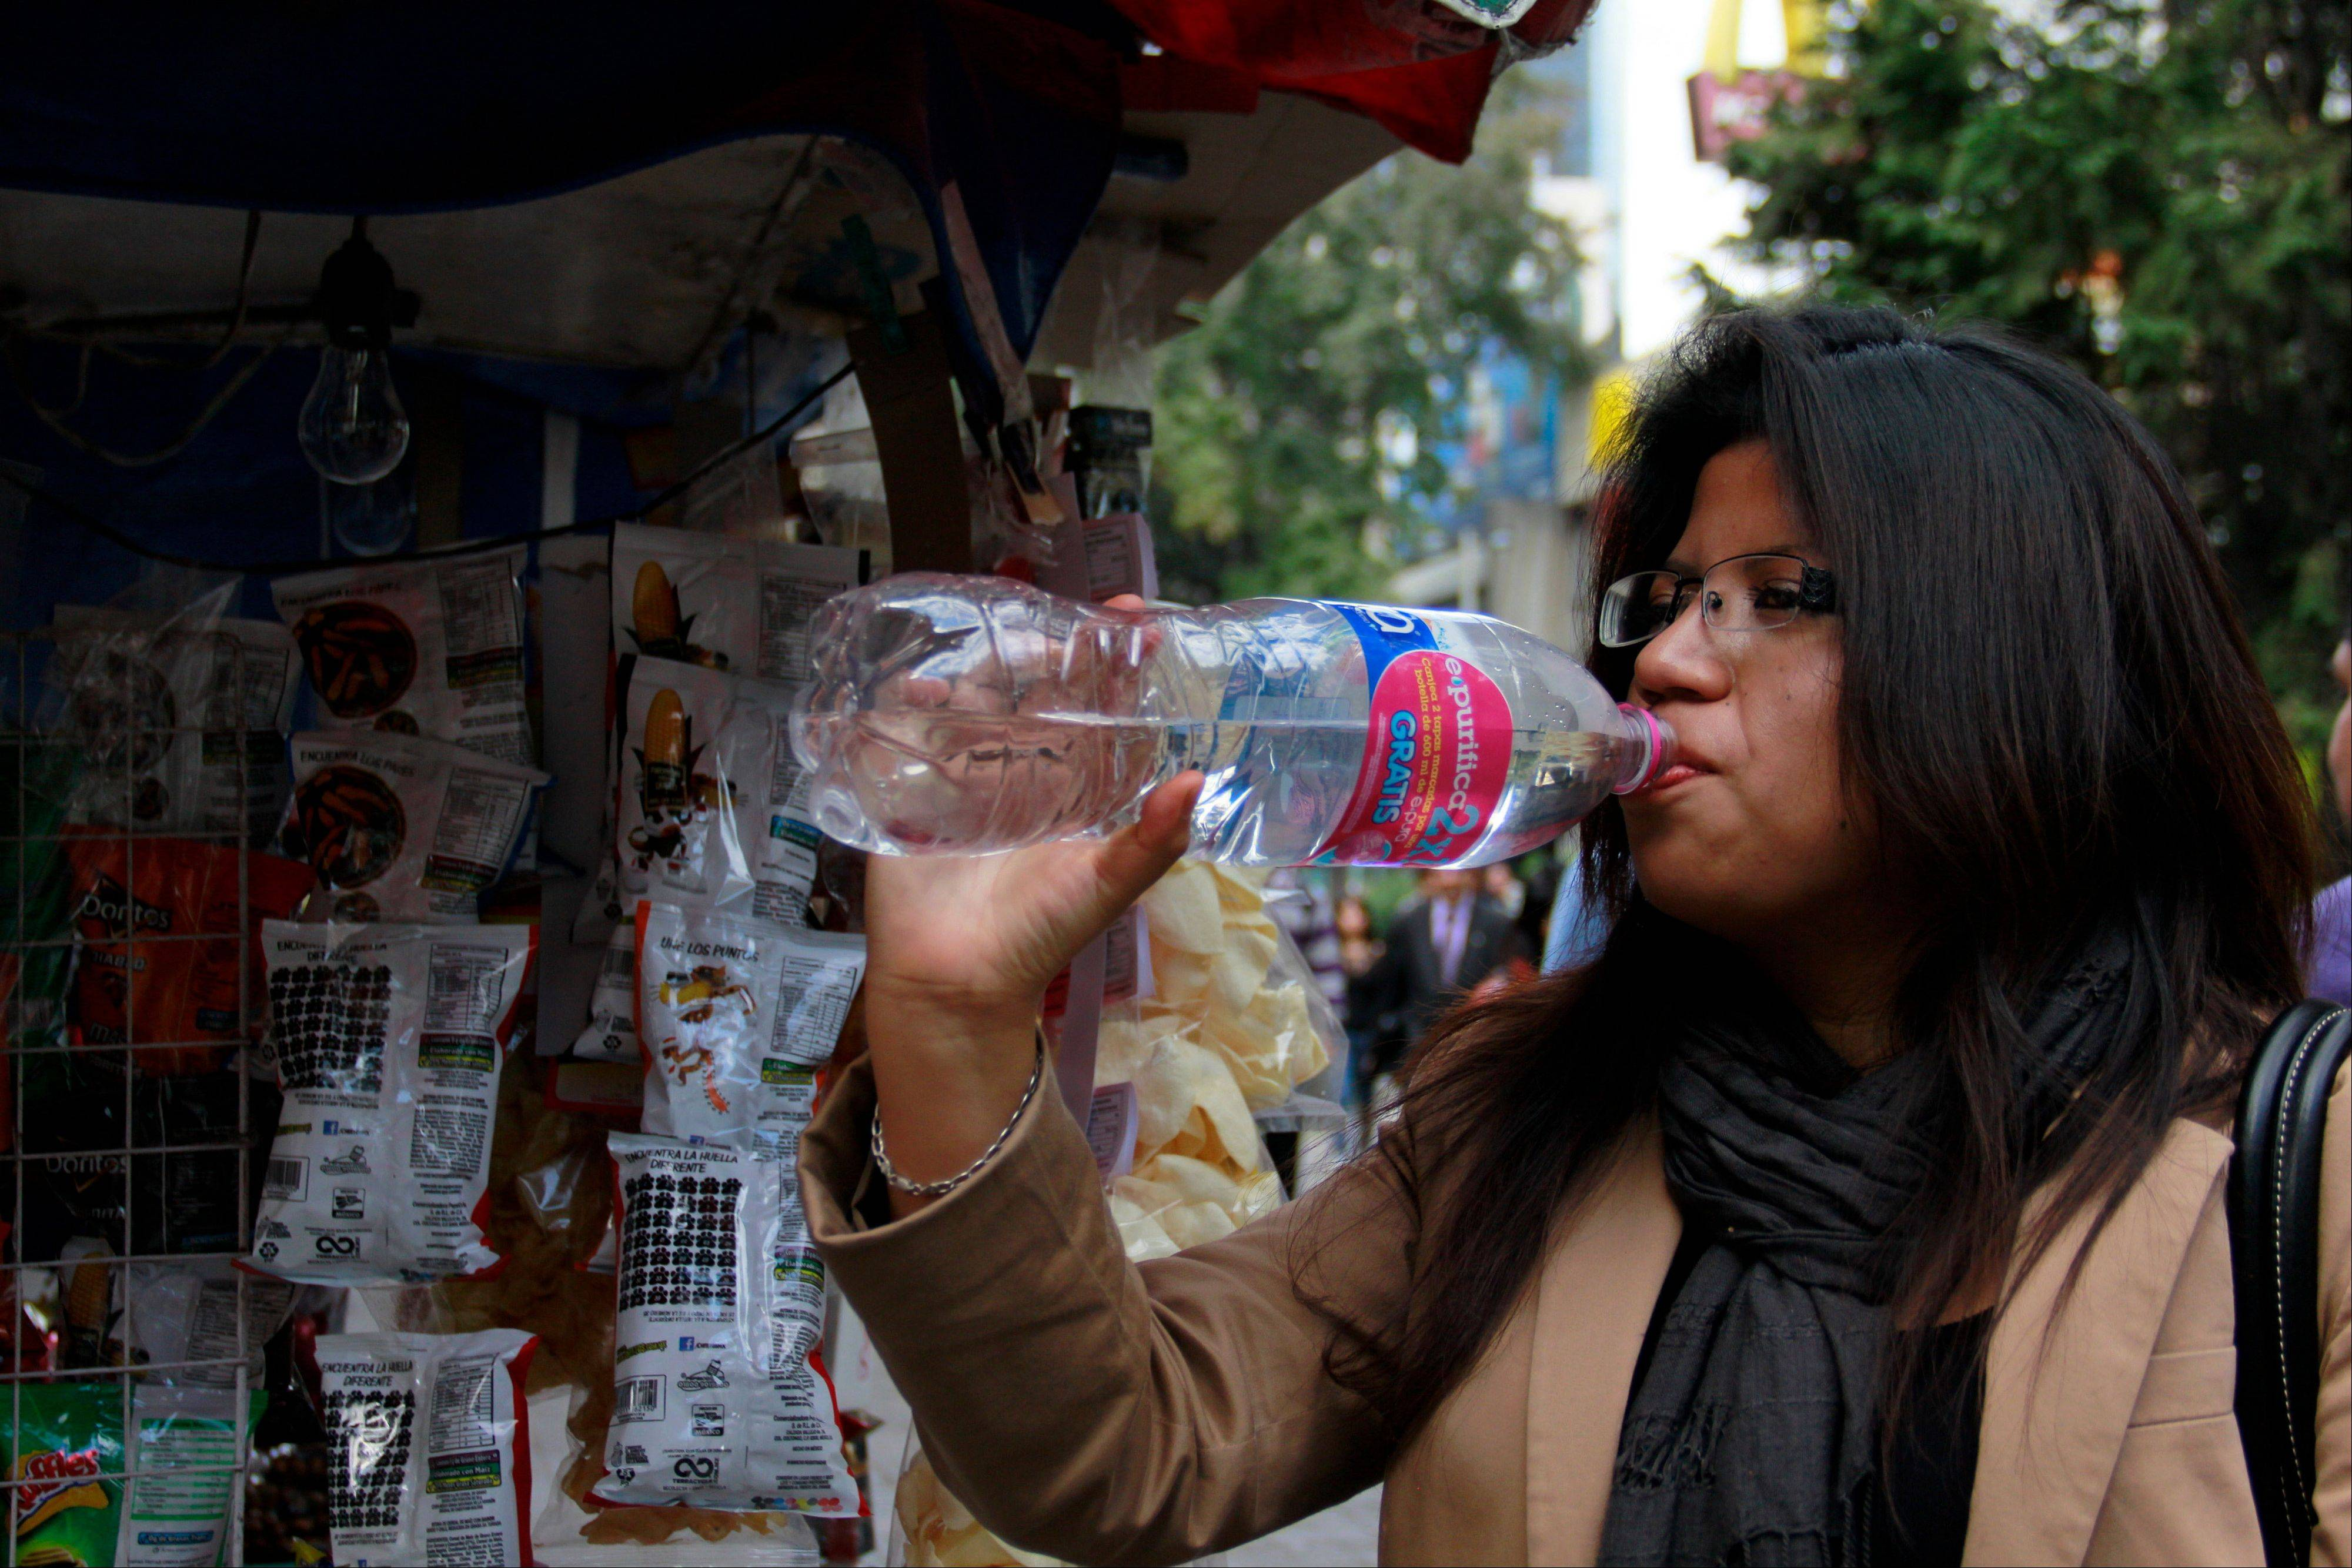 Bad tap water accounts in part for Mexico being the highest consumer of bottled water and sweetened drinks. A law recently approved by Mexico City's legislators will require all restaurants to install filters, offering patrons free, apparently drinkable potable water that won't lead to stomach problems and other ailments.